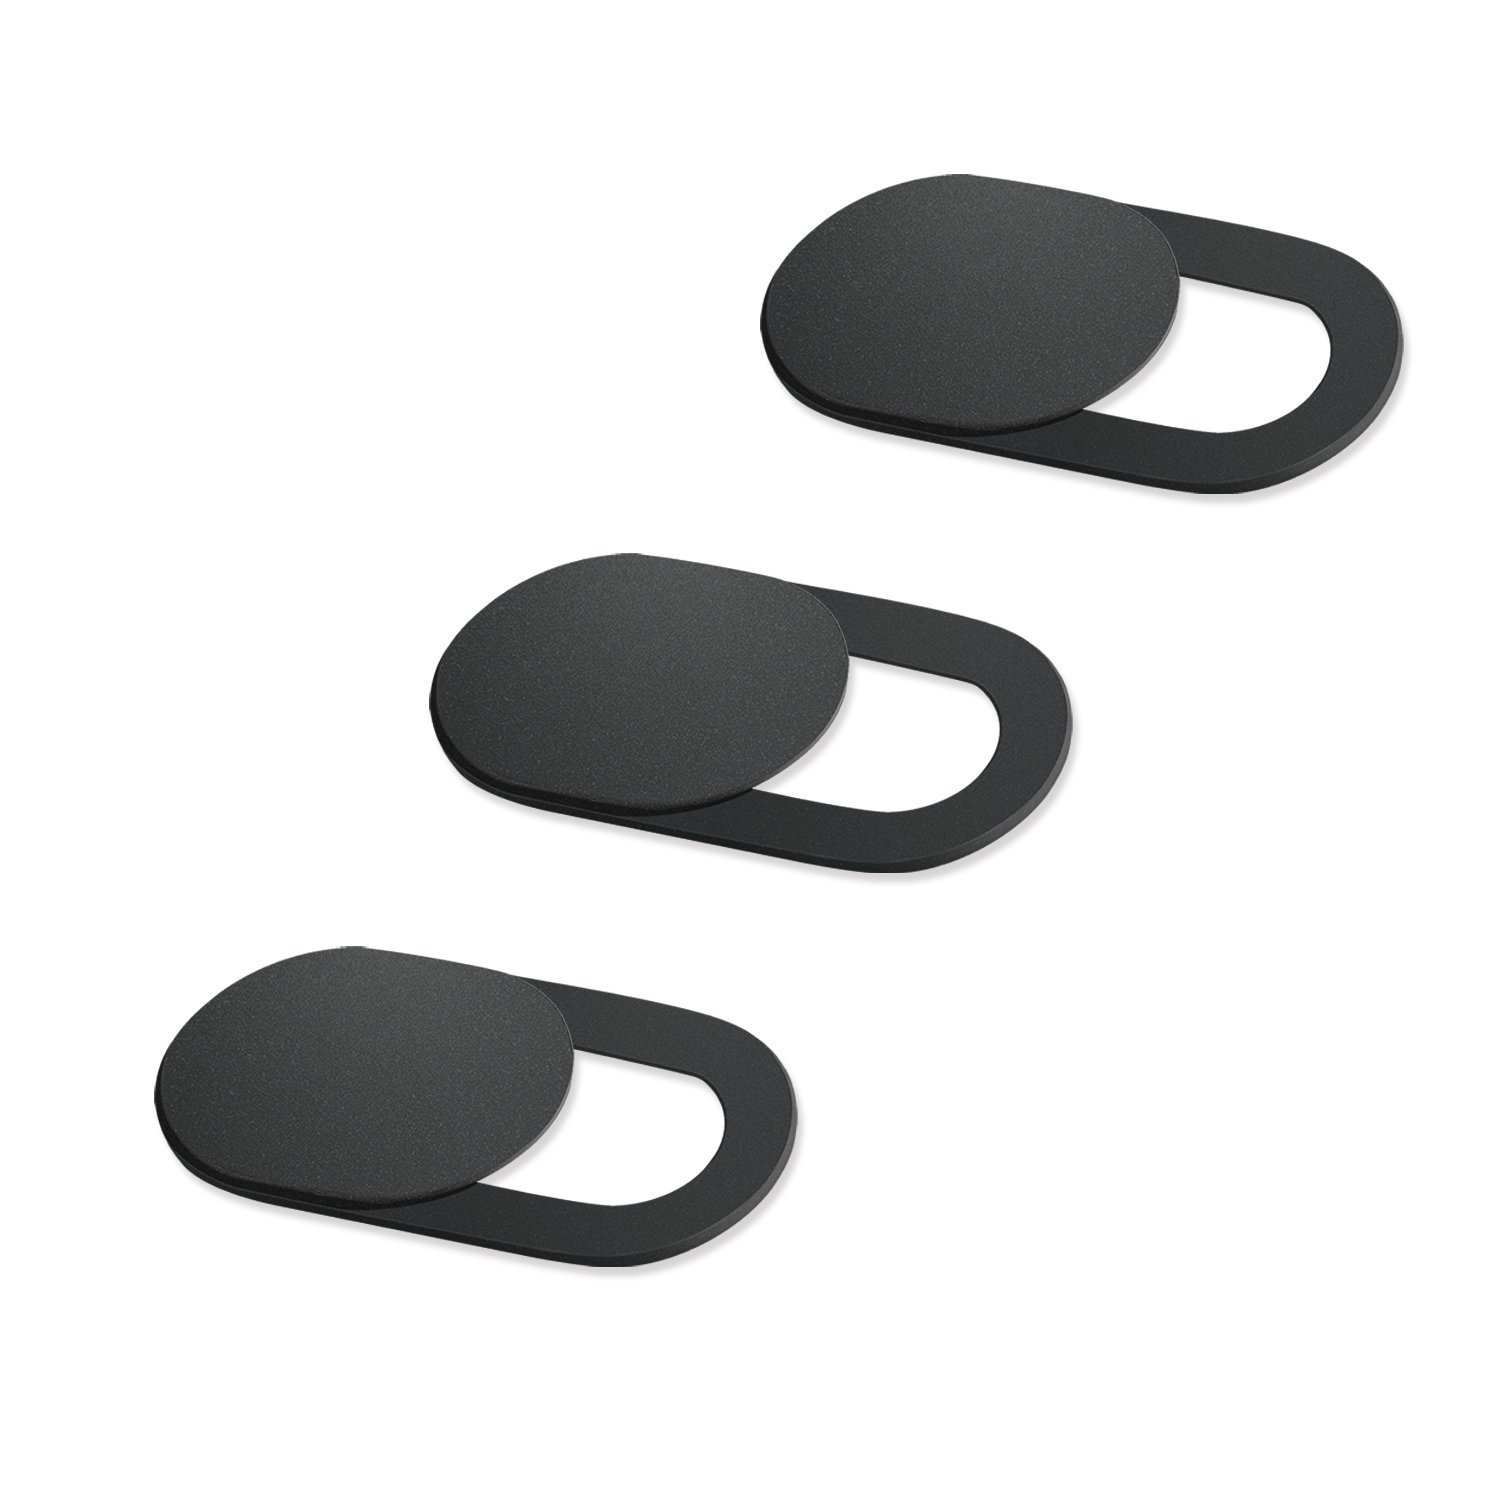 Nrpfell 3 Pack Webcam Cover Ultra-Thin Slide Privacy Protector Camera Cover for Laptop Phone, Protect Your Privacy and Security, Strong Adhesive Block